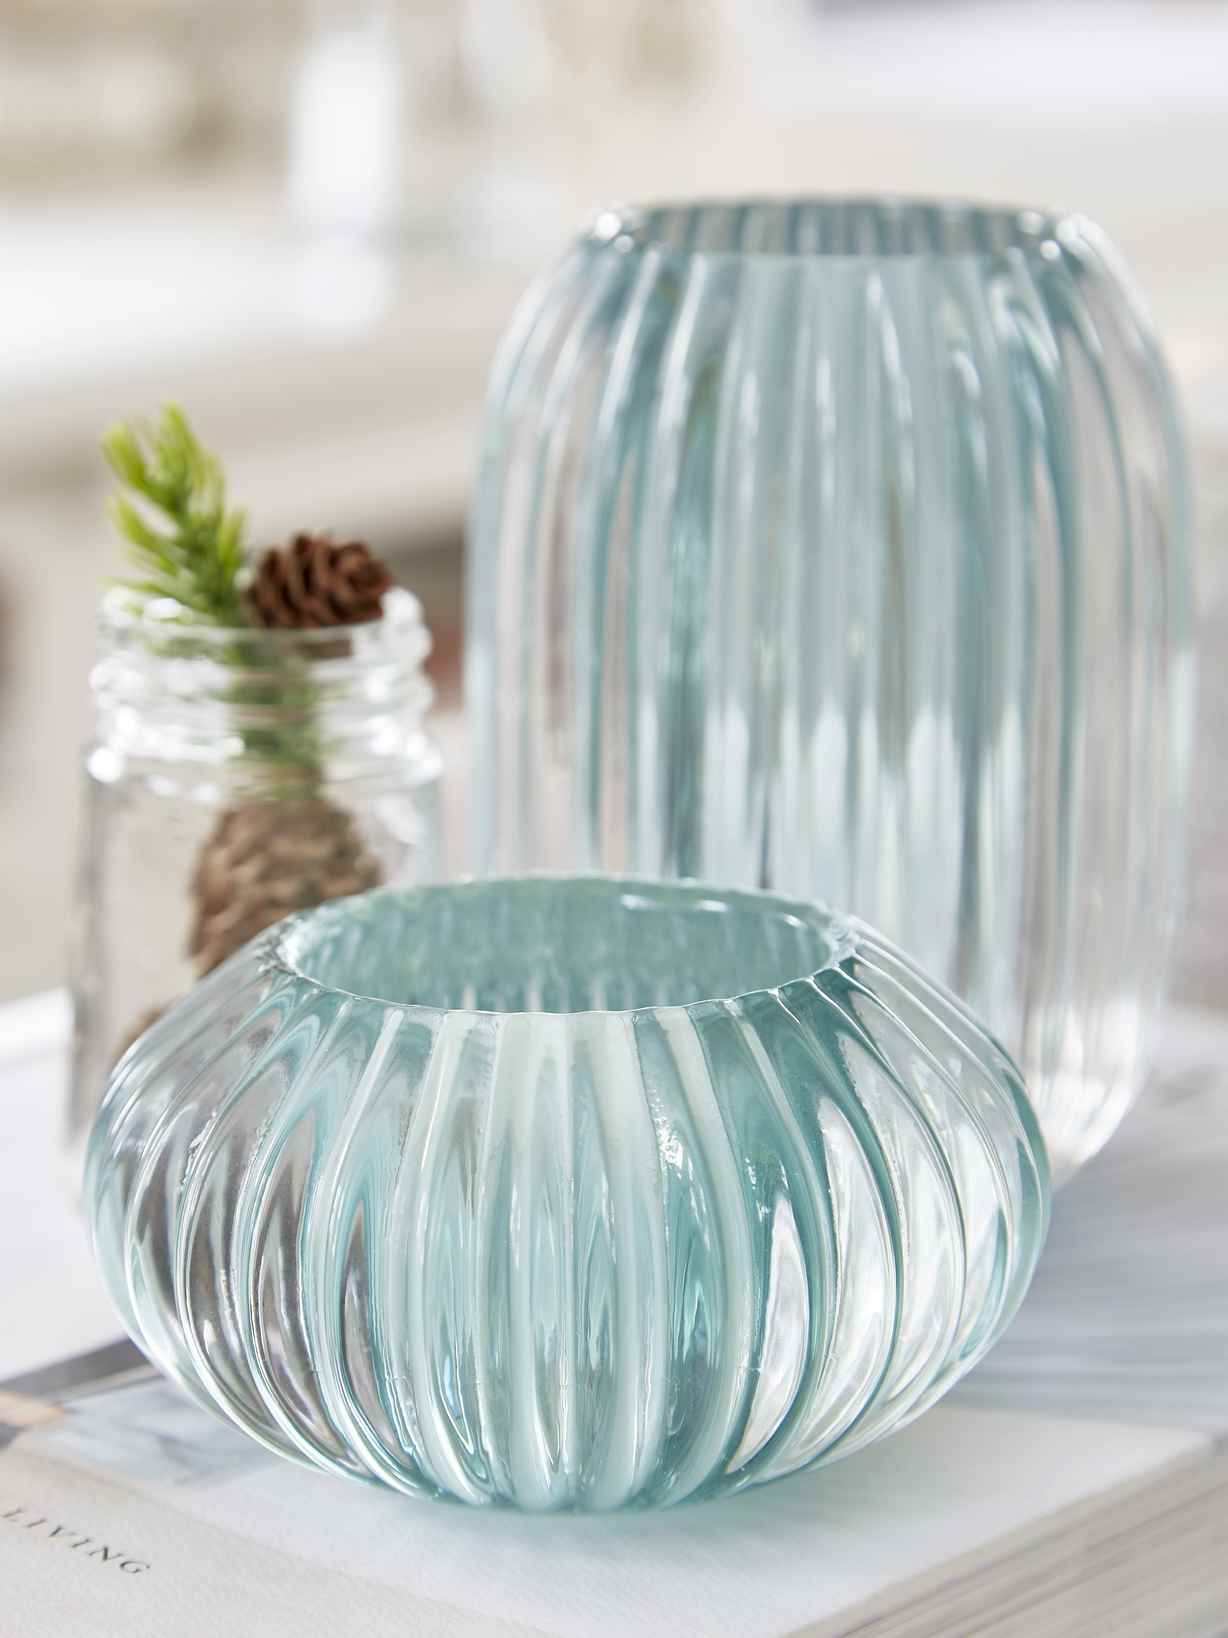 Nordic House Rilled Glass Tealights - Sea Green